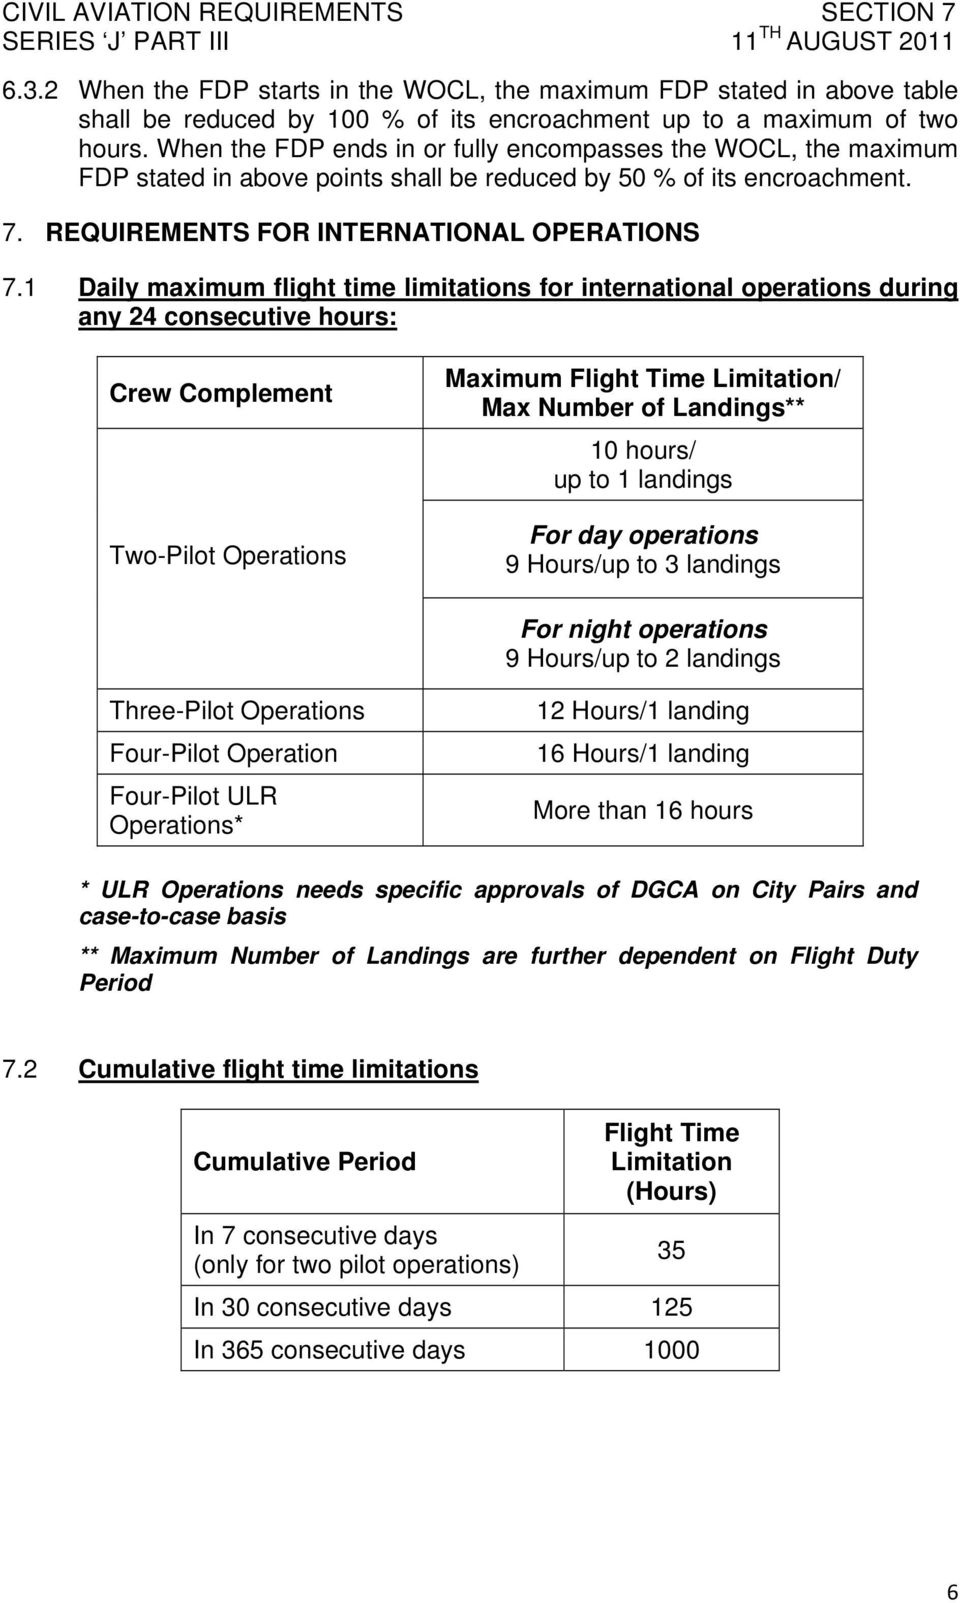 1 Daily maximum flight time limitations for international operations during any 24 consecutive hours: Crew Complement Two-Pilot Operations Maximum Flight Time Limitation/ Max Number of Landings** 10